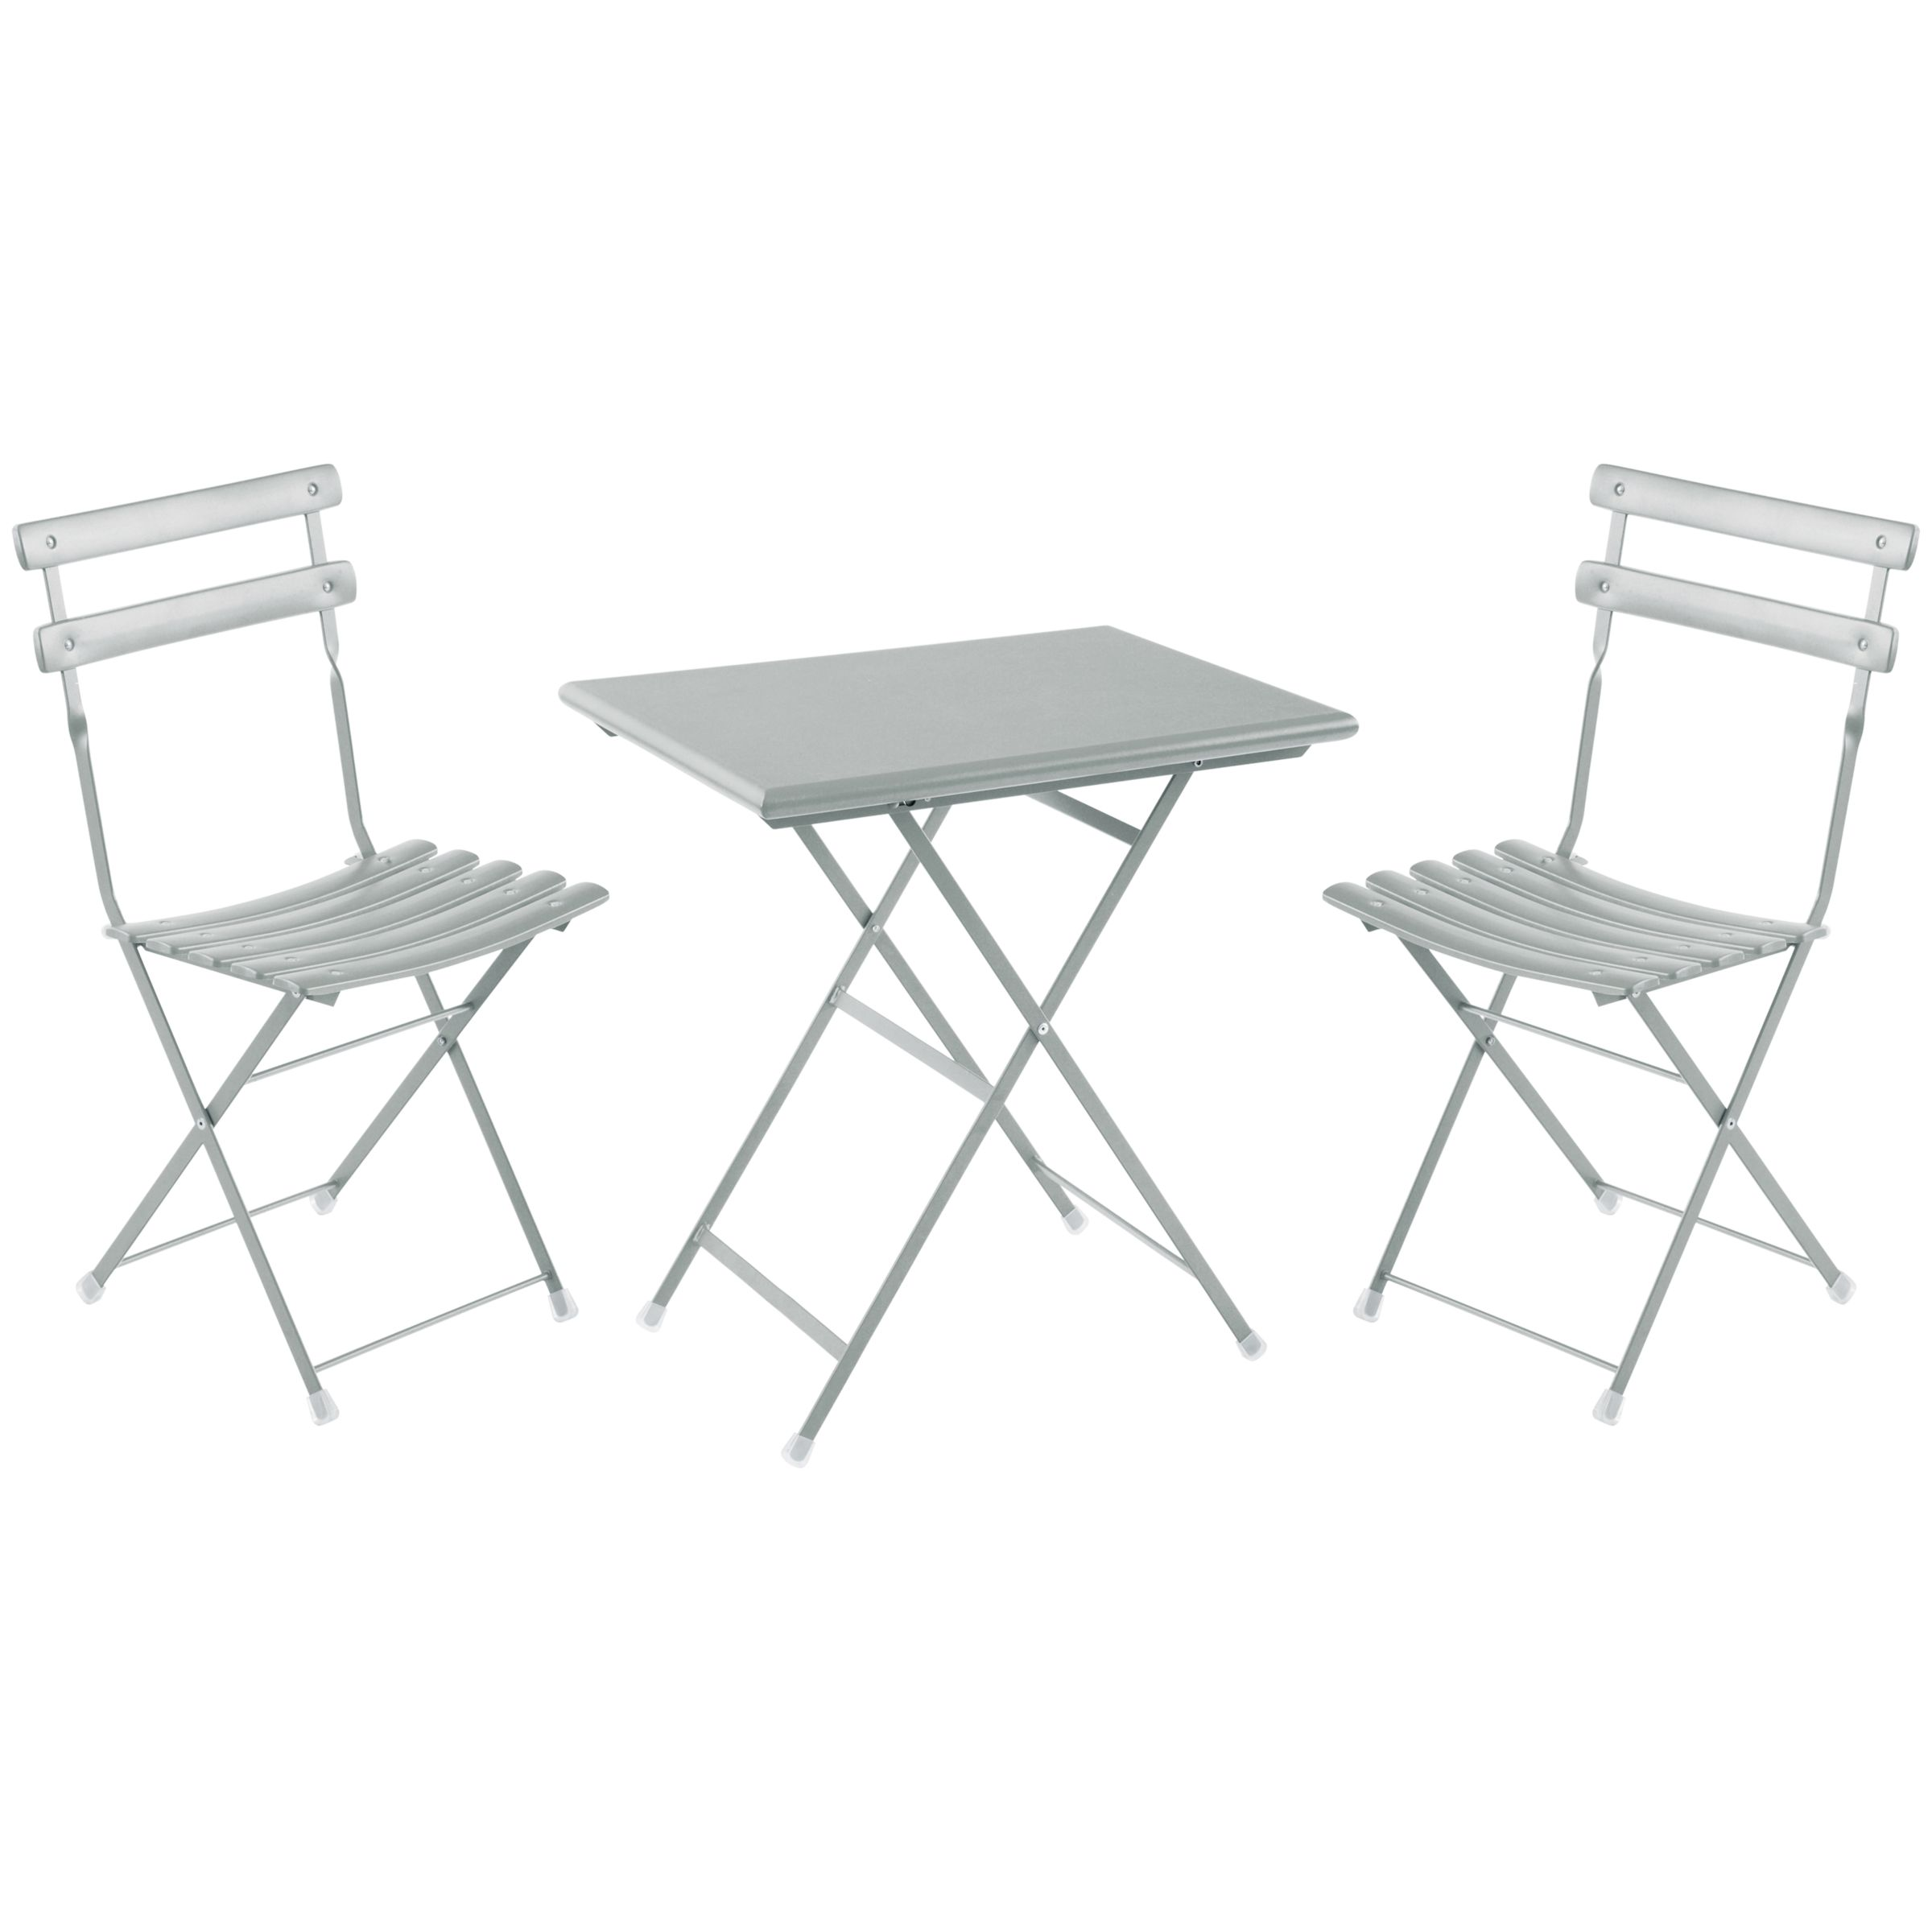 EMU Arc en Ciel 2 Seater Square Outdoor Furniture Set